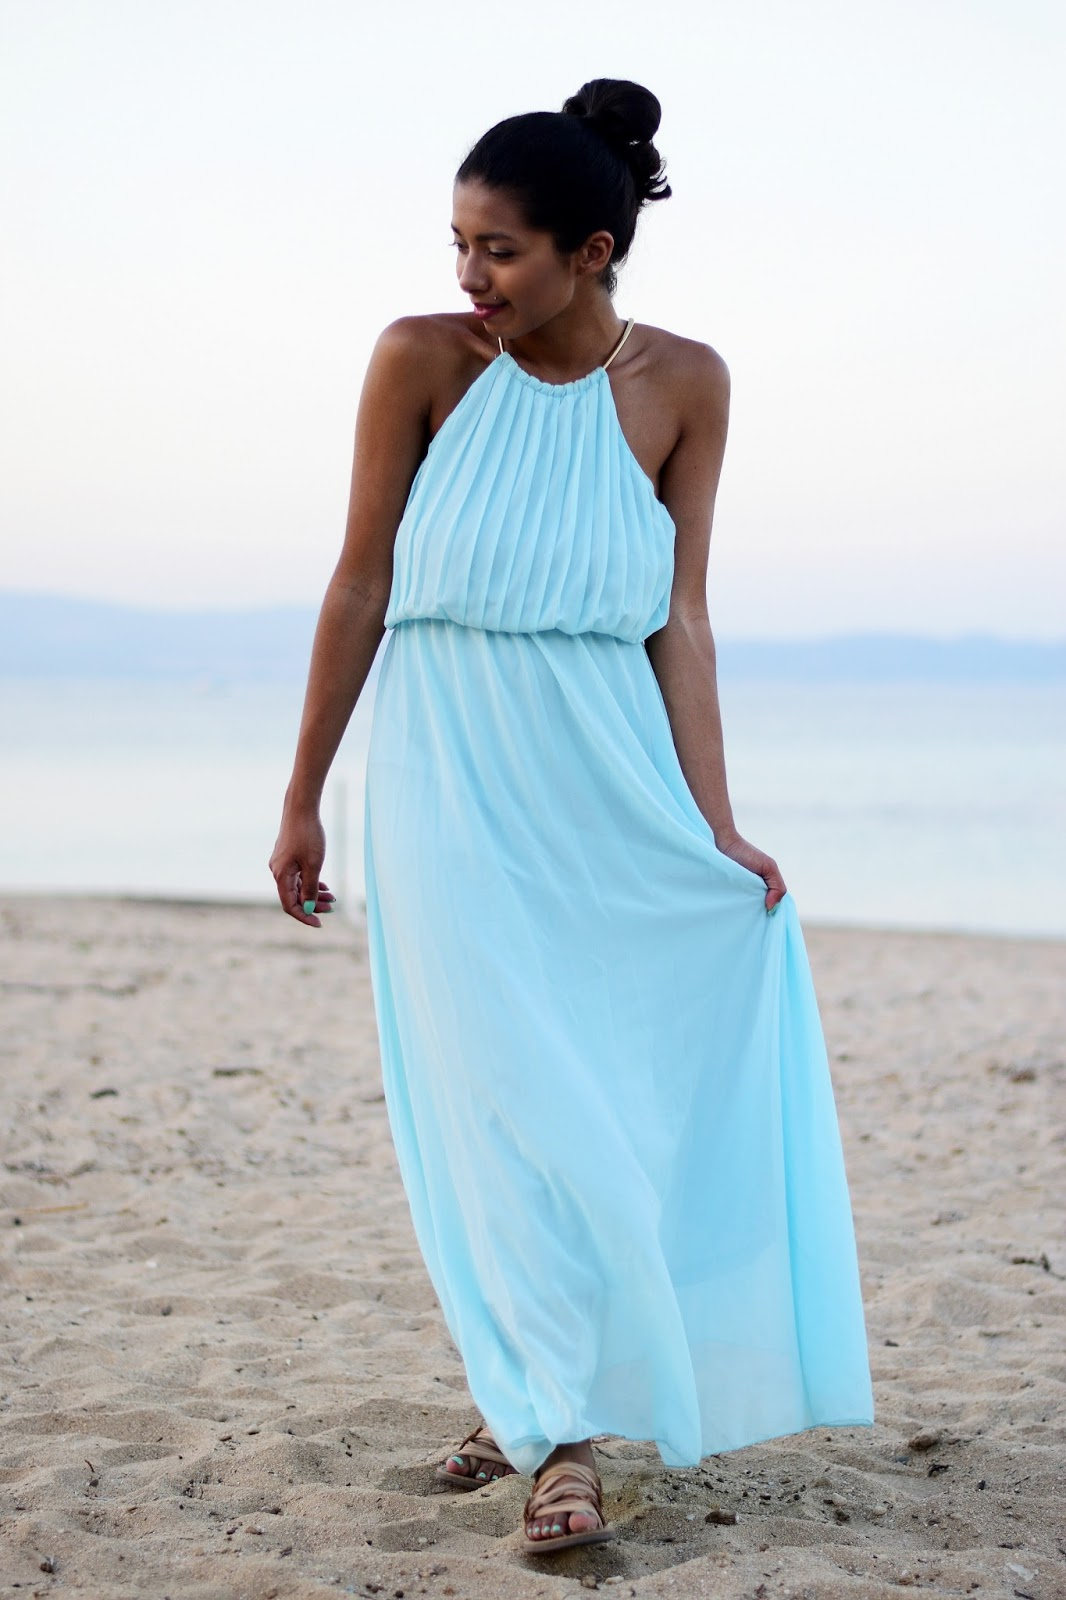 How to wear a formal grecian style dress in summer